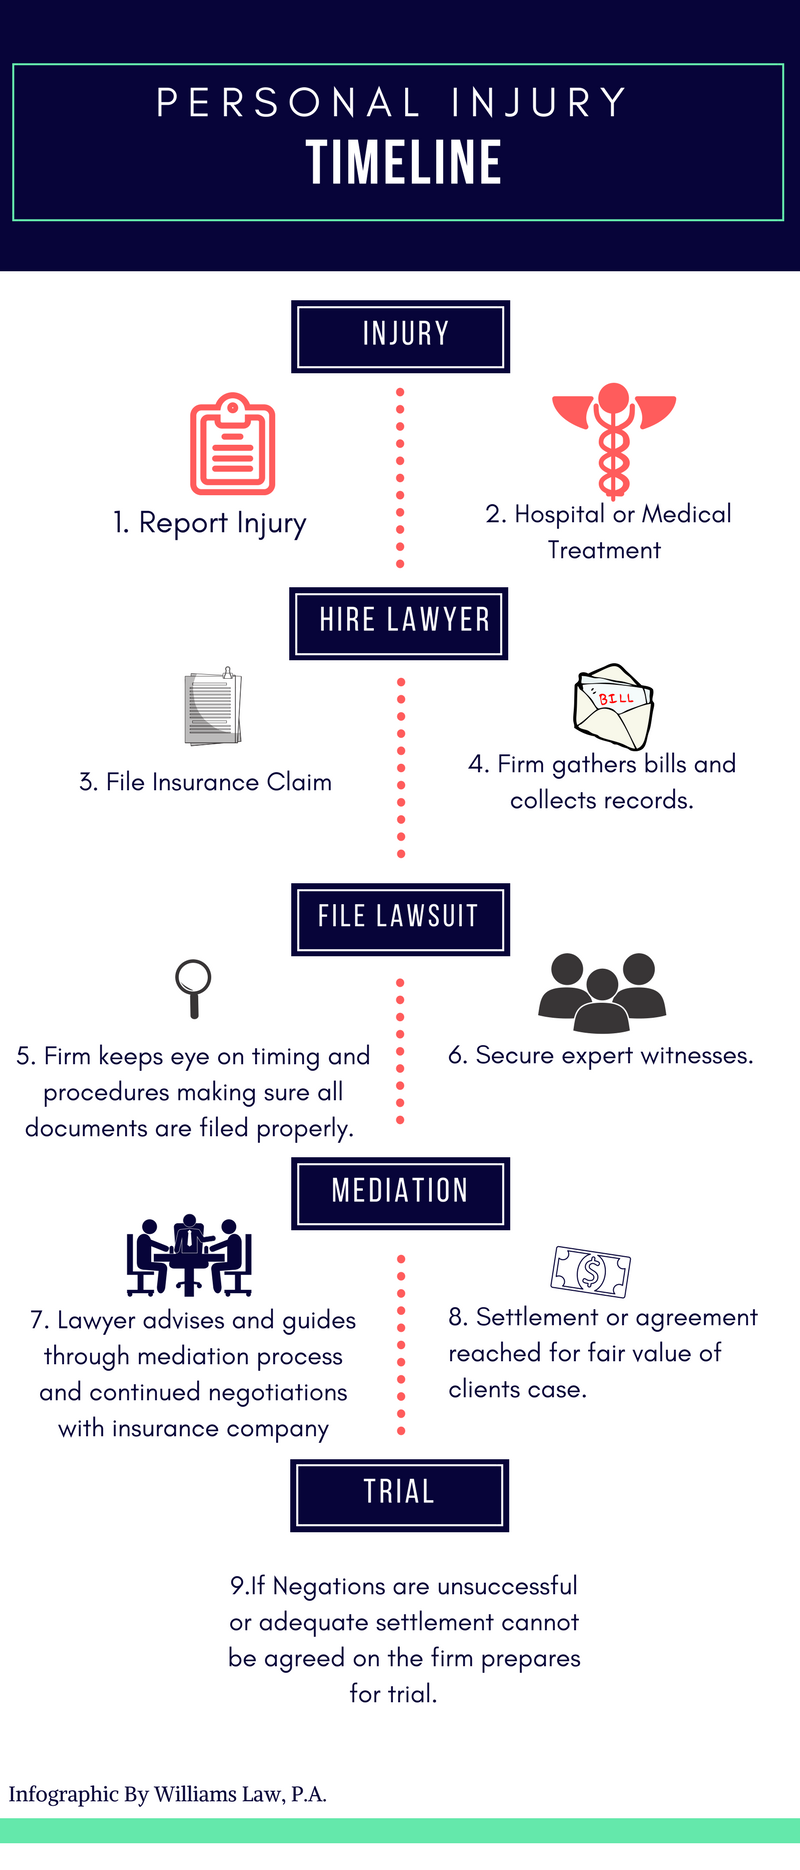 Tampa personal injury timeline